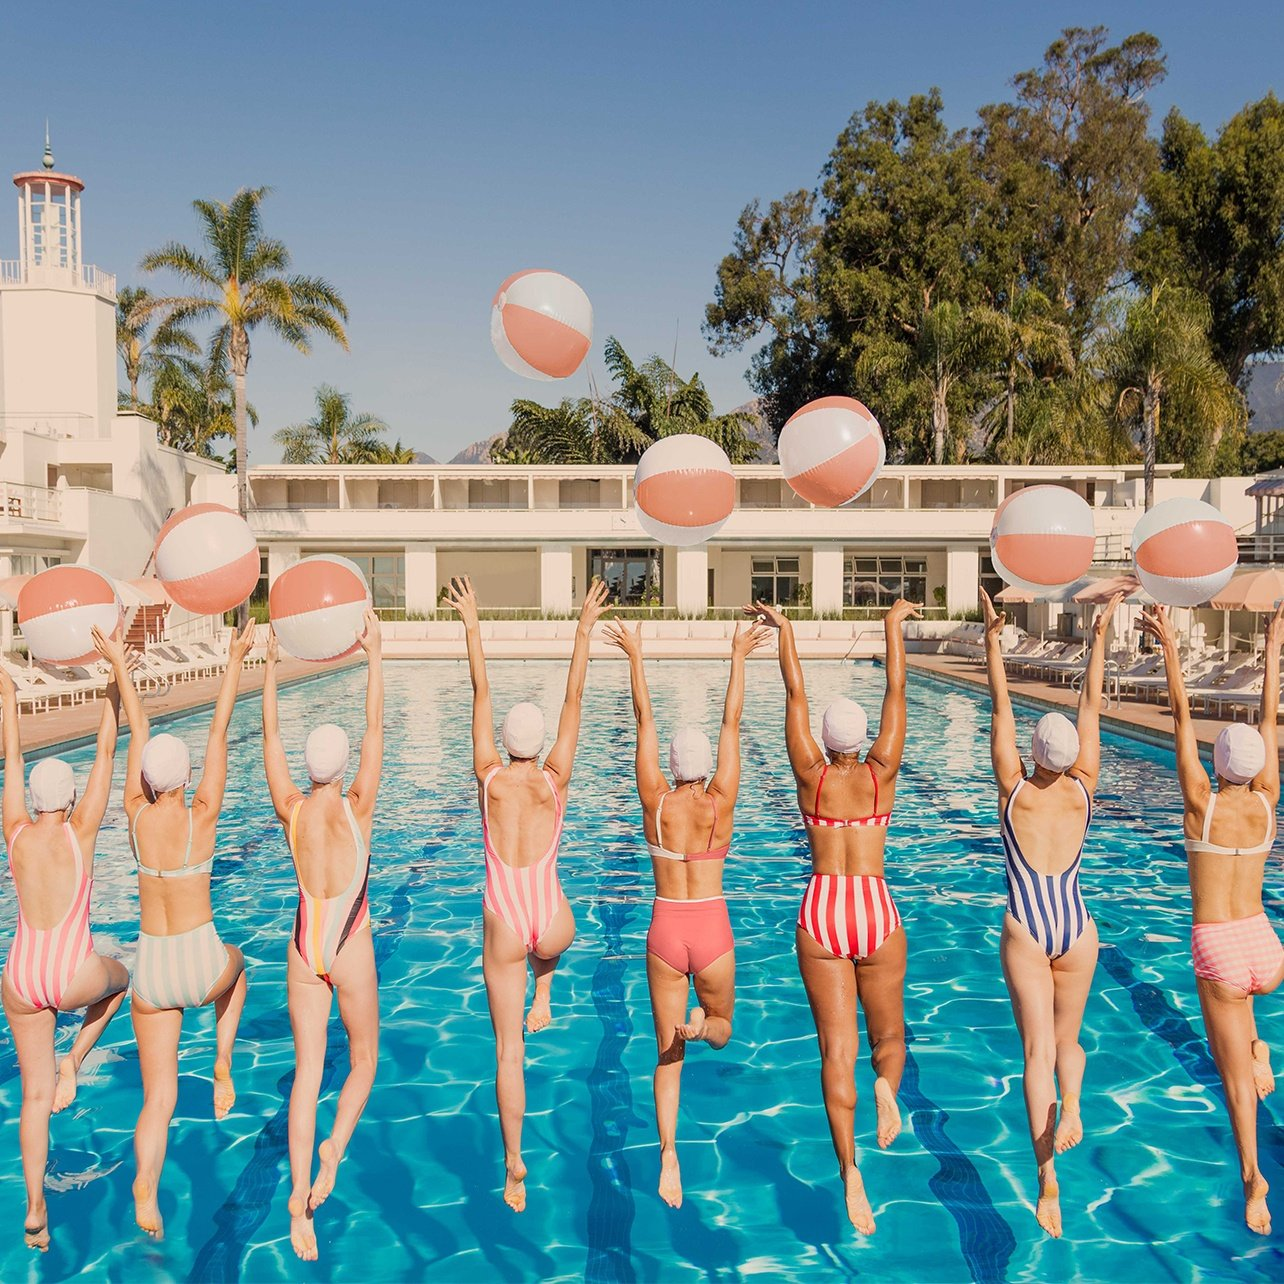 Group of women in striped bikinis jumping into a swimming pool with matching beach balls above their heads